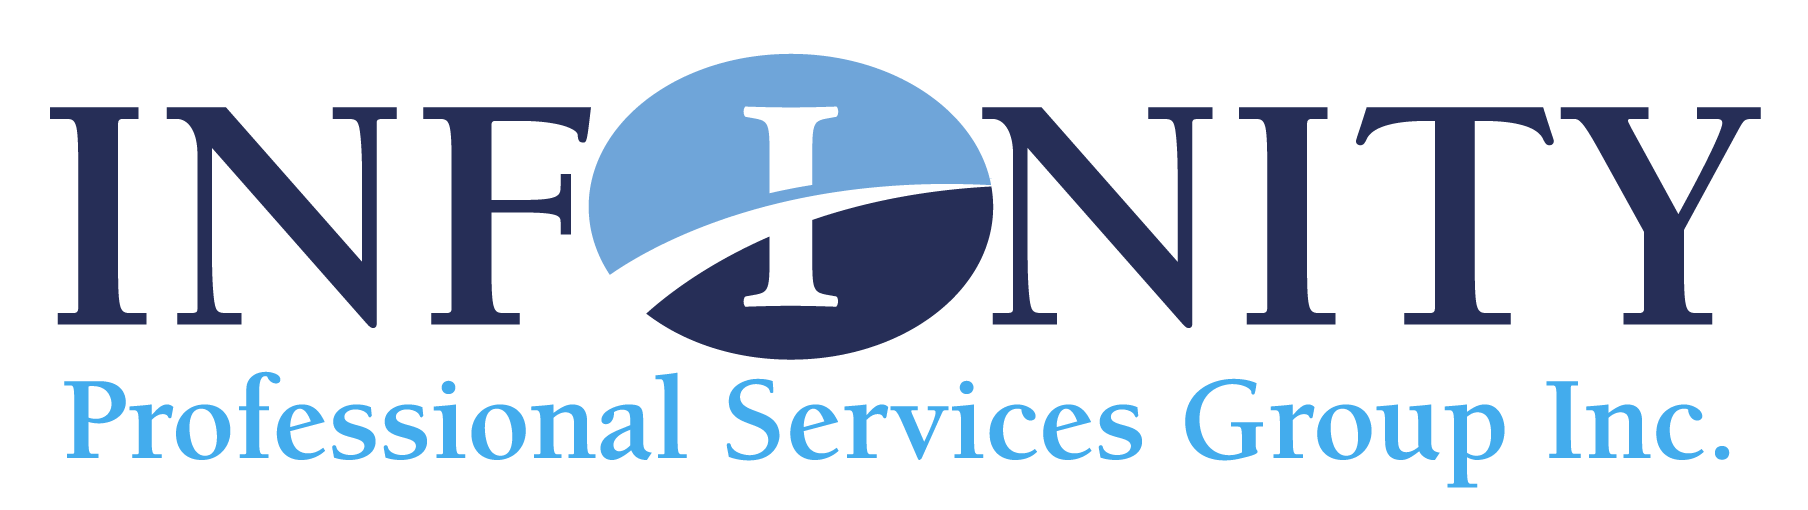 Infinity Professional Services Group Inc. logo